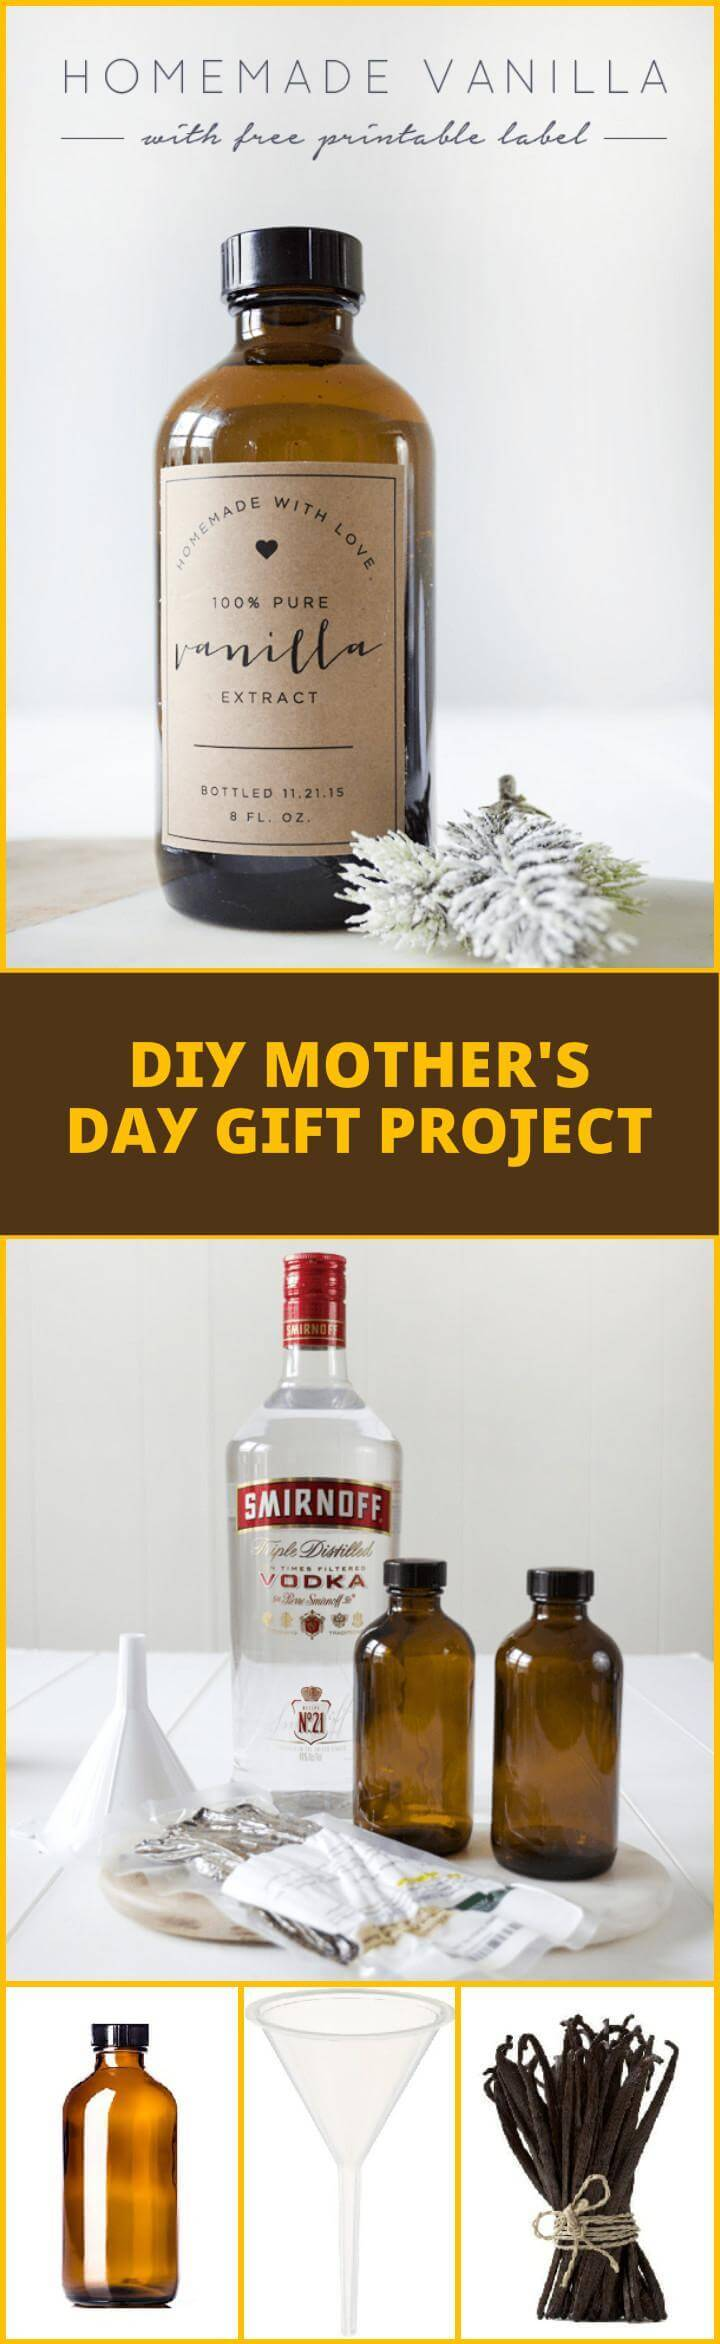 DIY Homemade Vanilla Mother's Day gift idea